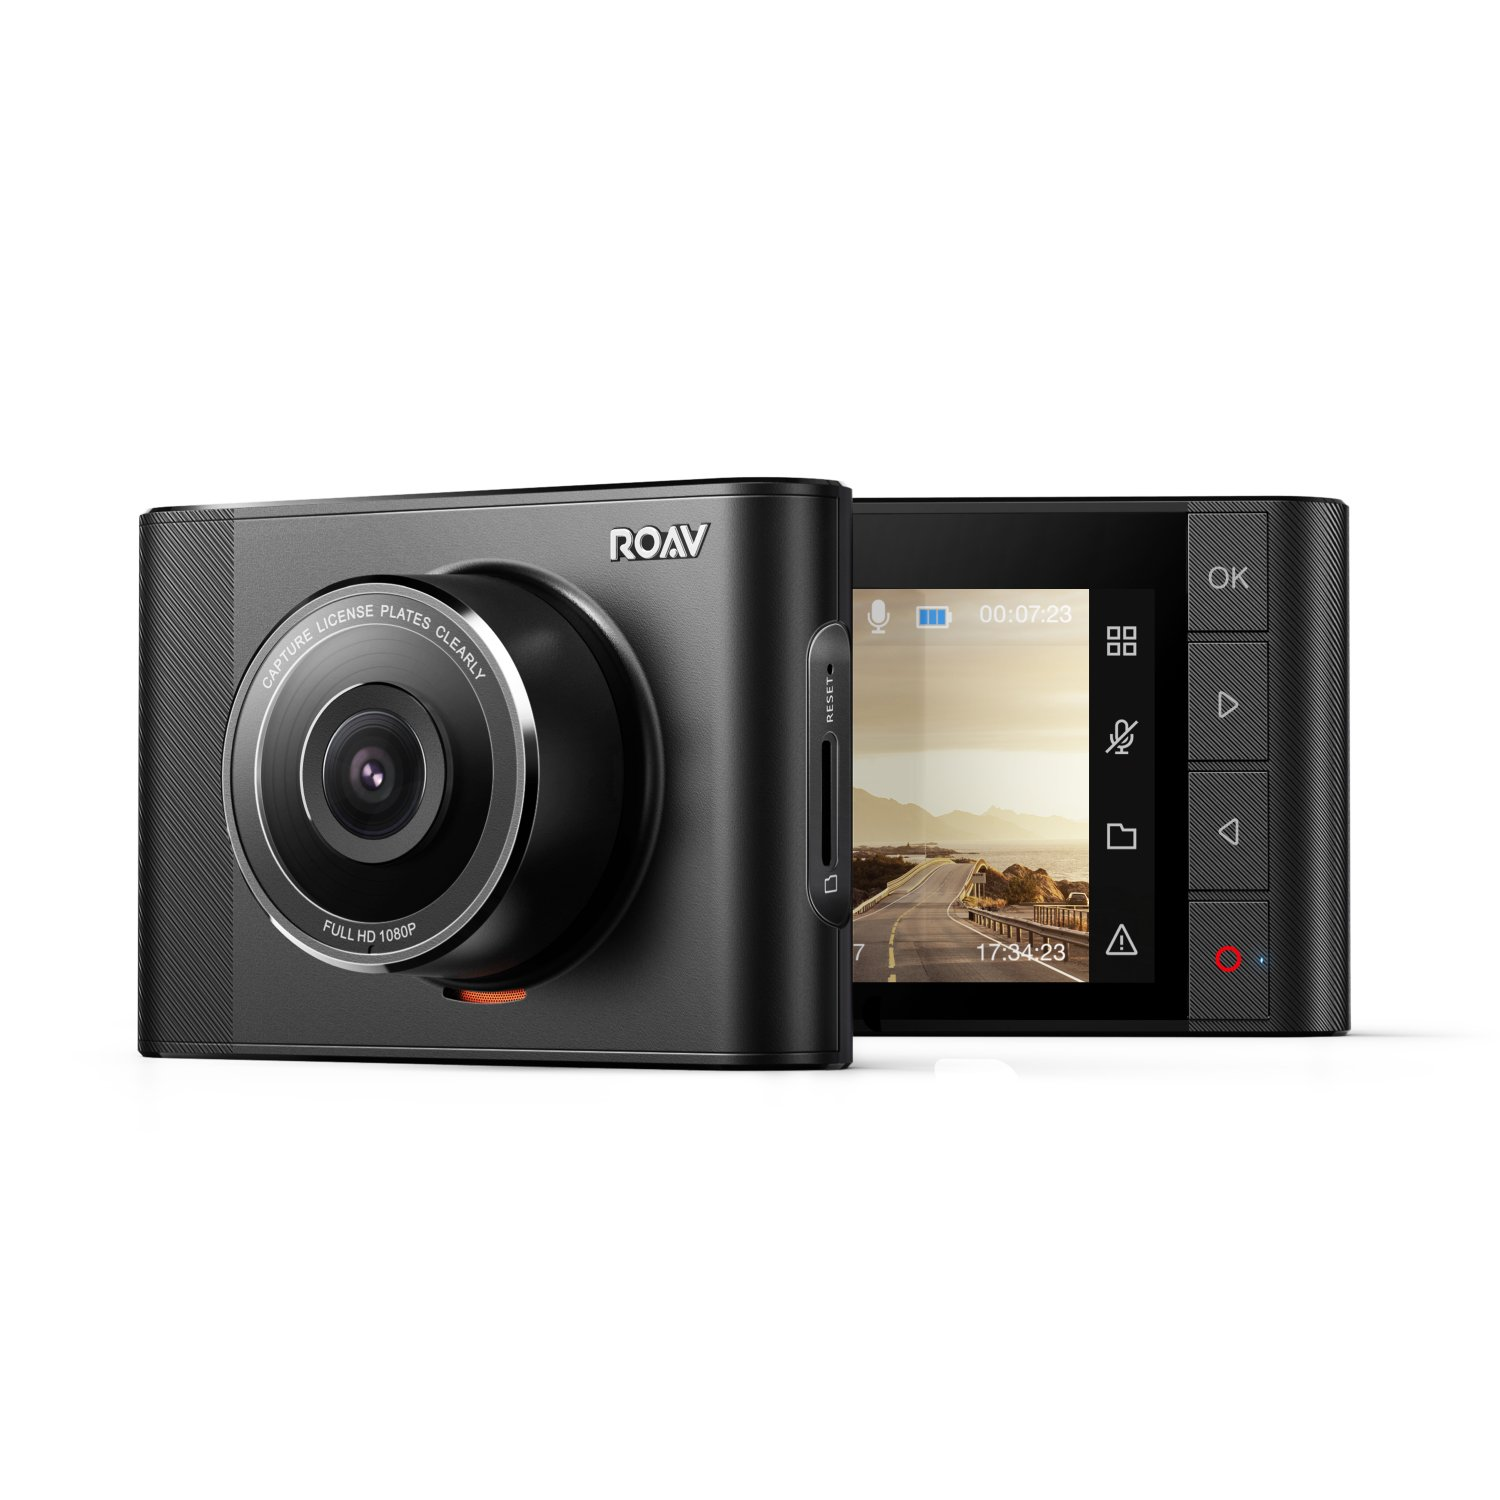 Roav by Anker, DashCam A1, Dash Cam, Dashboard Camera Recorder, 1080P FHD, Nighthawk Vision, Wide-Angle View, WiFi, G-Sensor, WDR, Loop Recording, and Night Mode